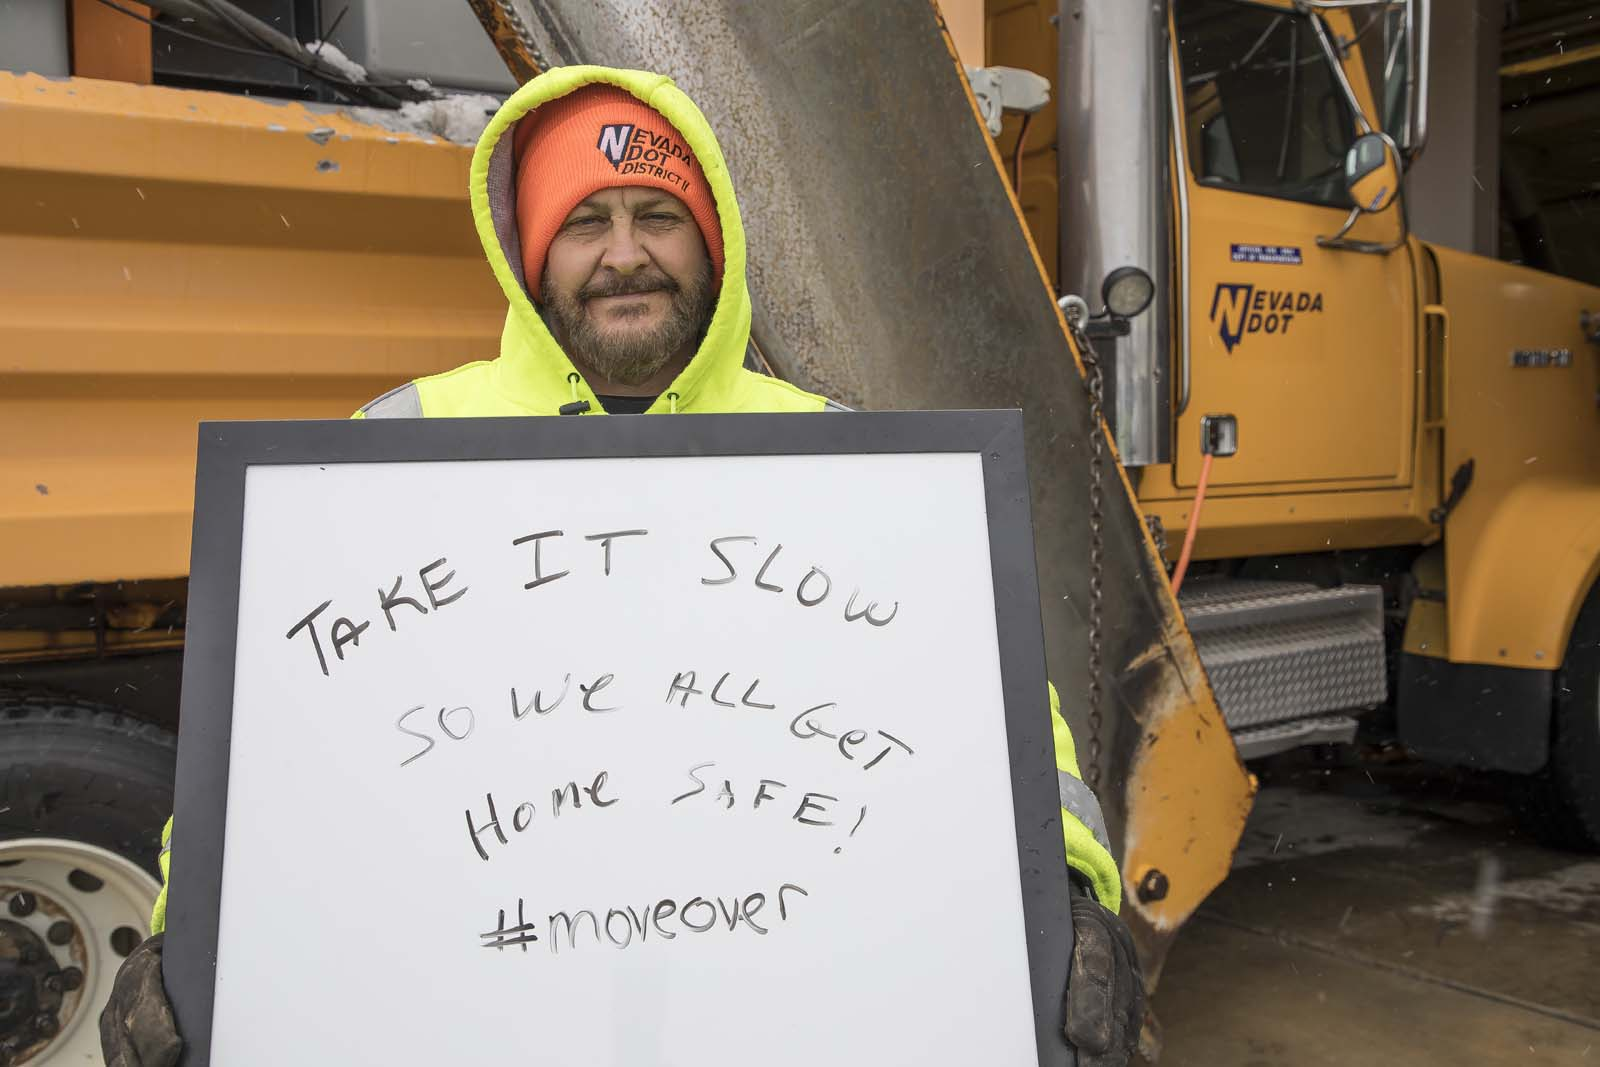 An NDOT employee holding a sign for drivers to go slowly in winter conditions